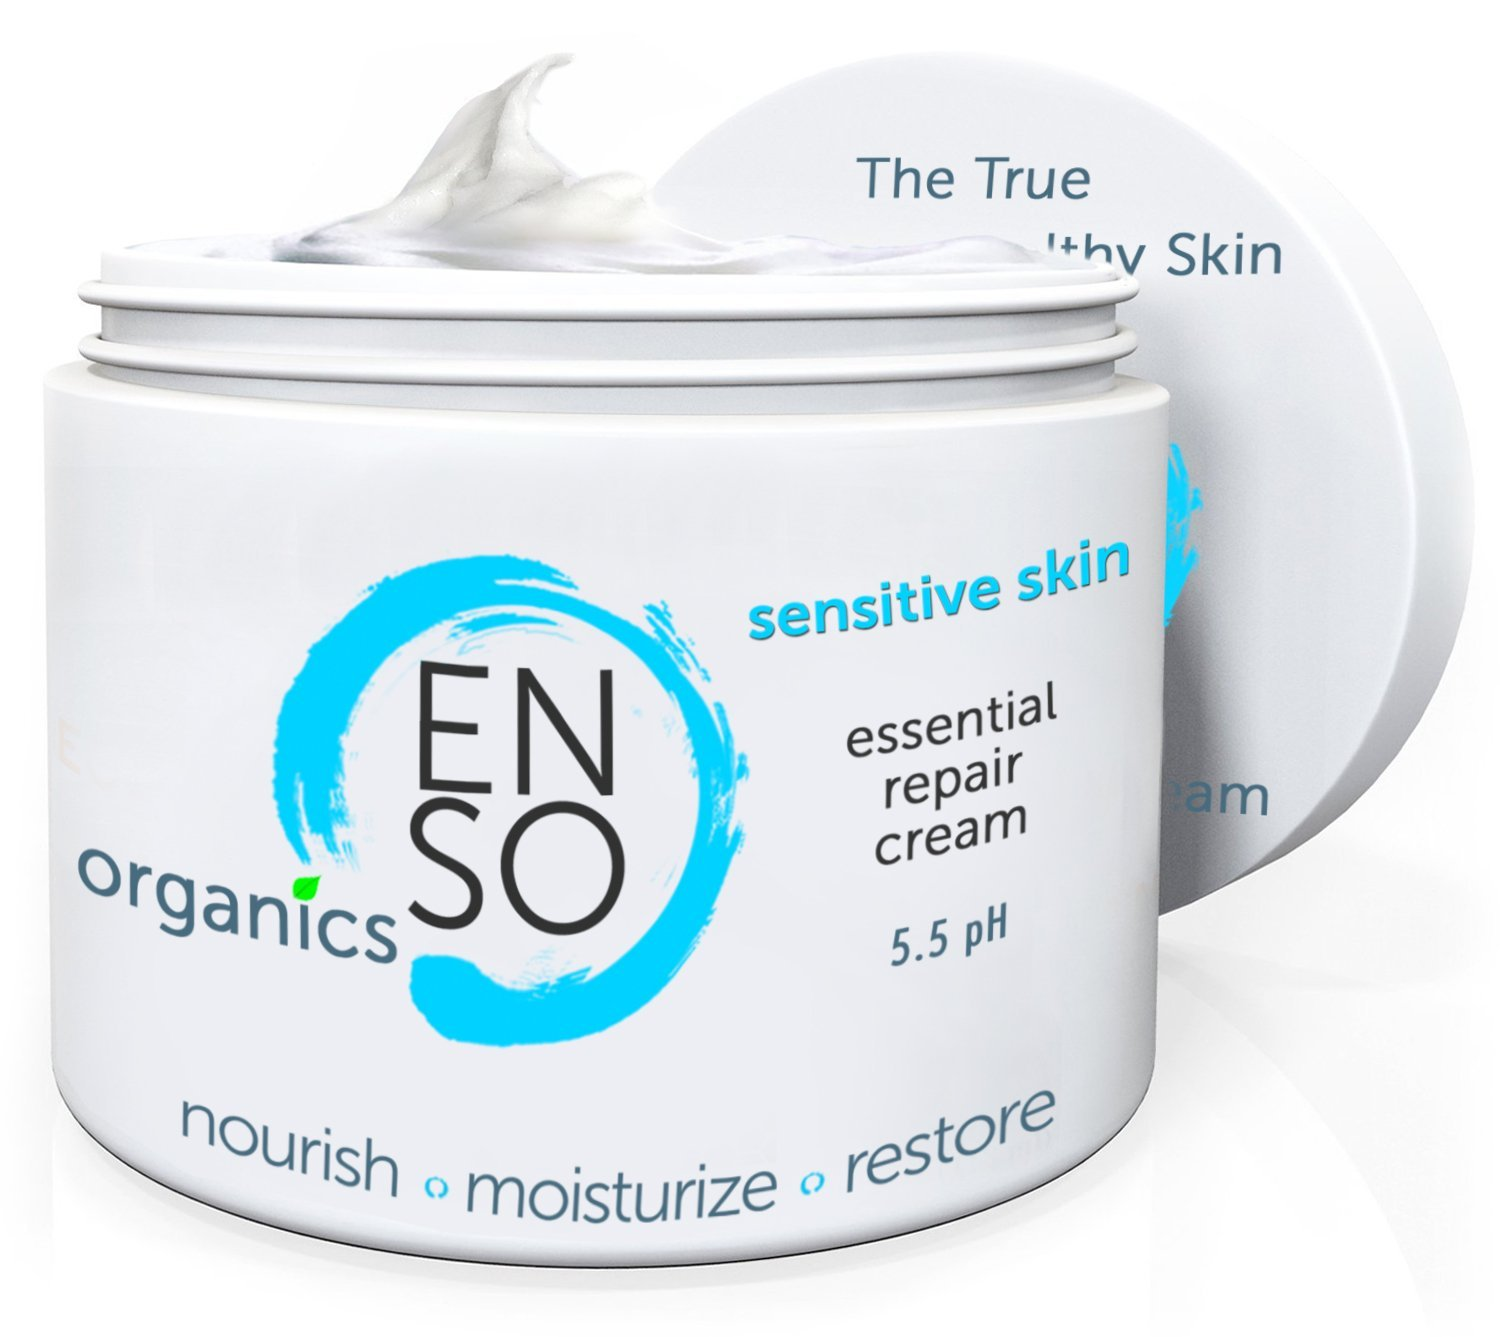 moisturizer-for-sensitive-skin-care-by-enso-essential-repair-face-cream-yields-concentrated-healing-for-dry-skin